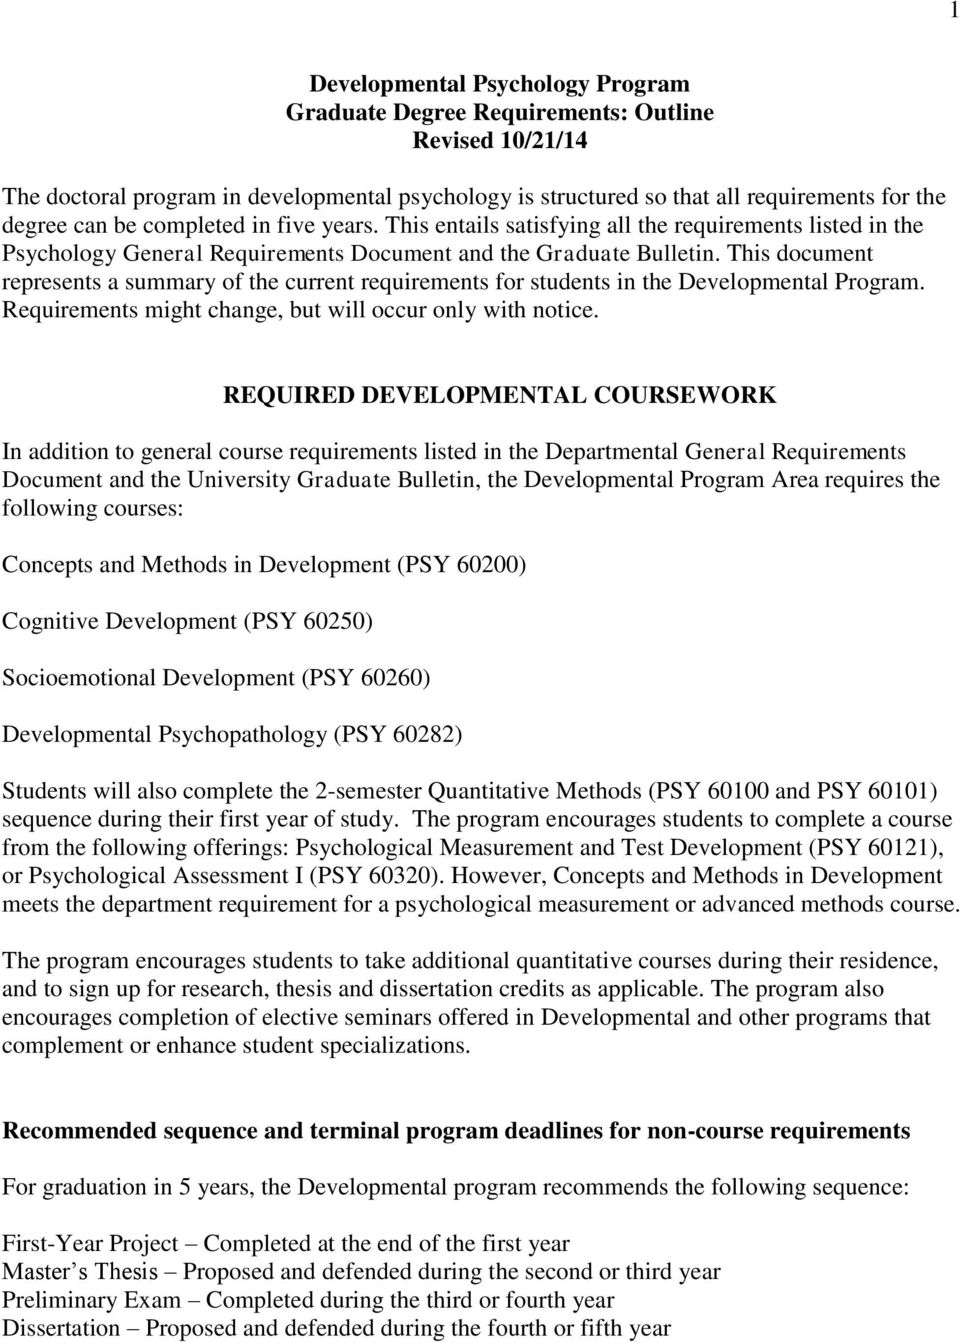 This document represents a summary of the current requirements for students in the Developmental Program. Requirements might change, but will occur only with notice.